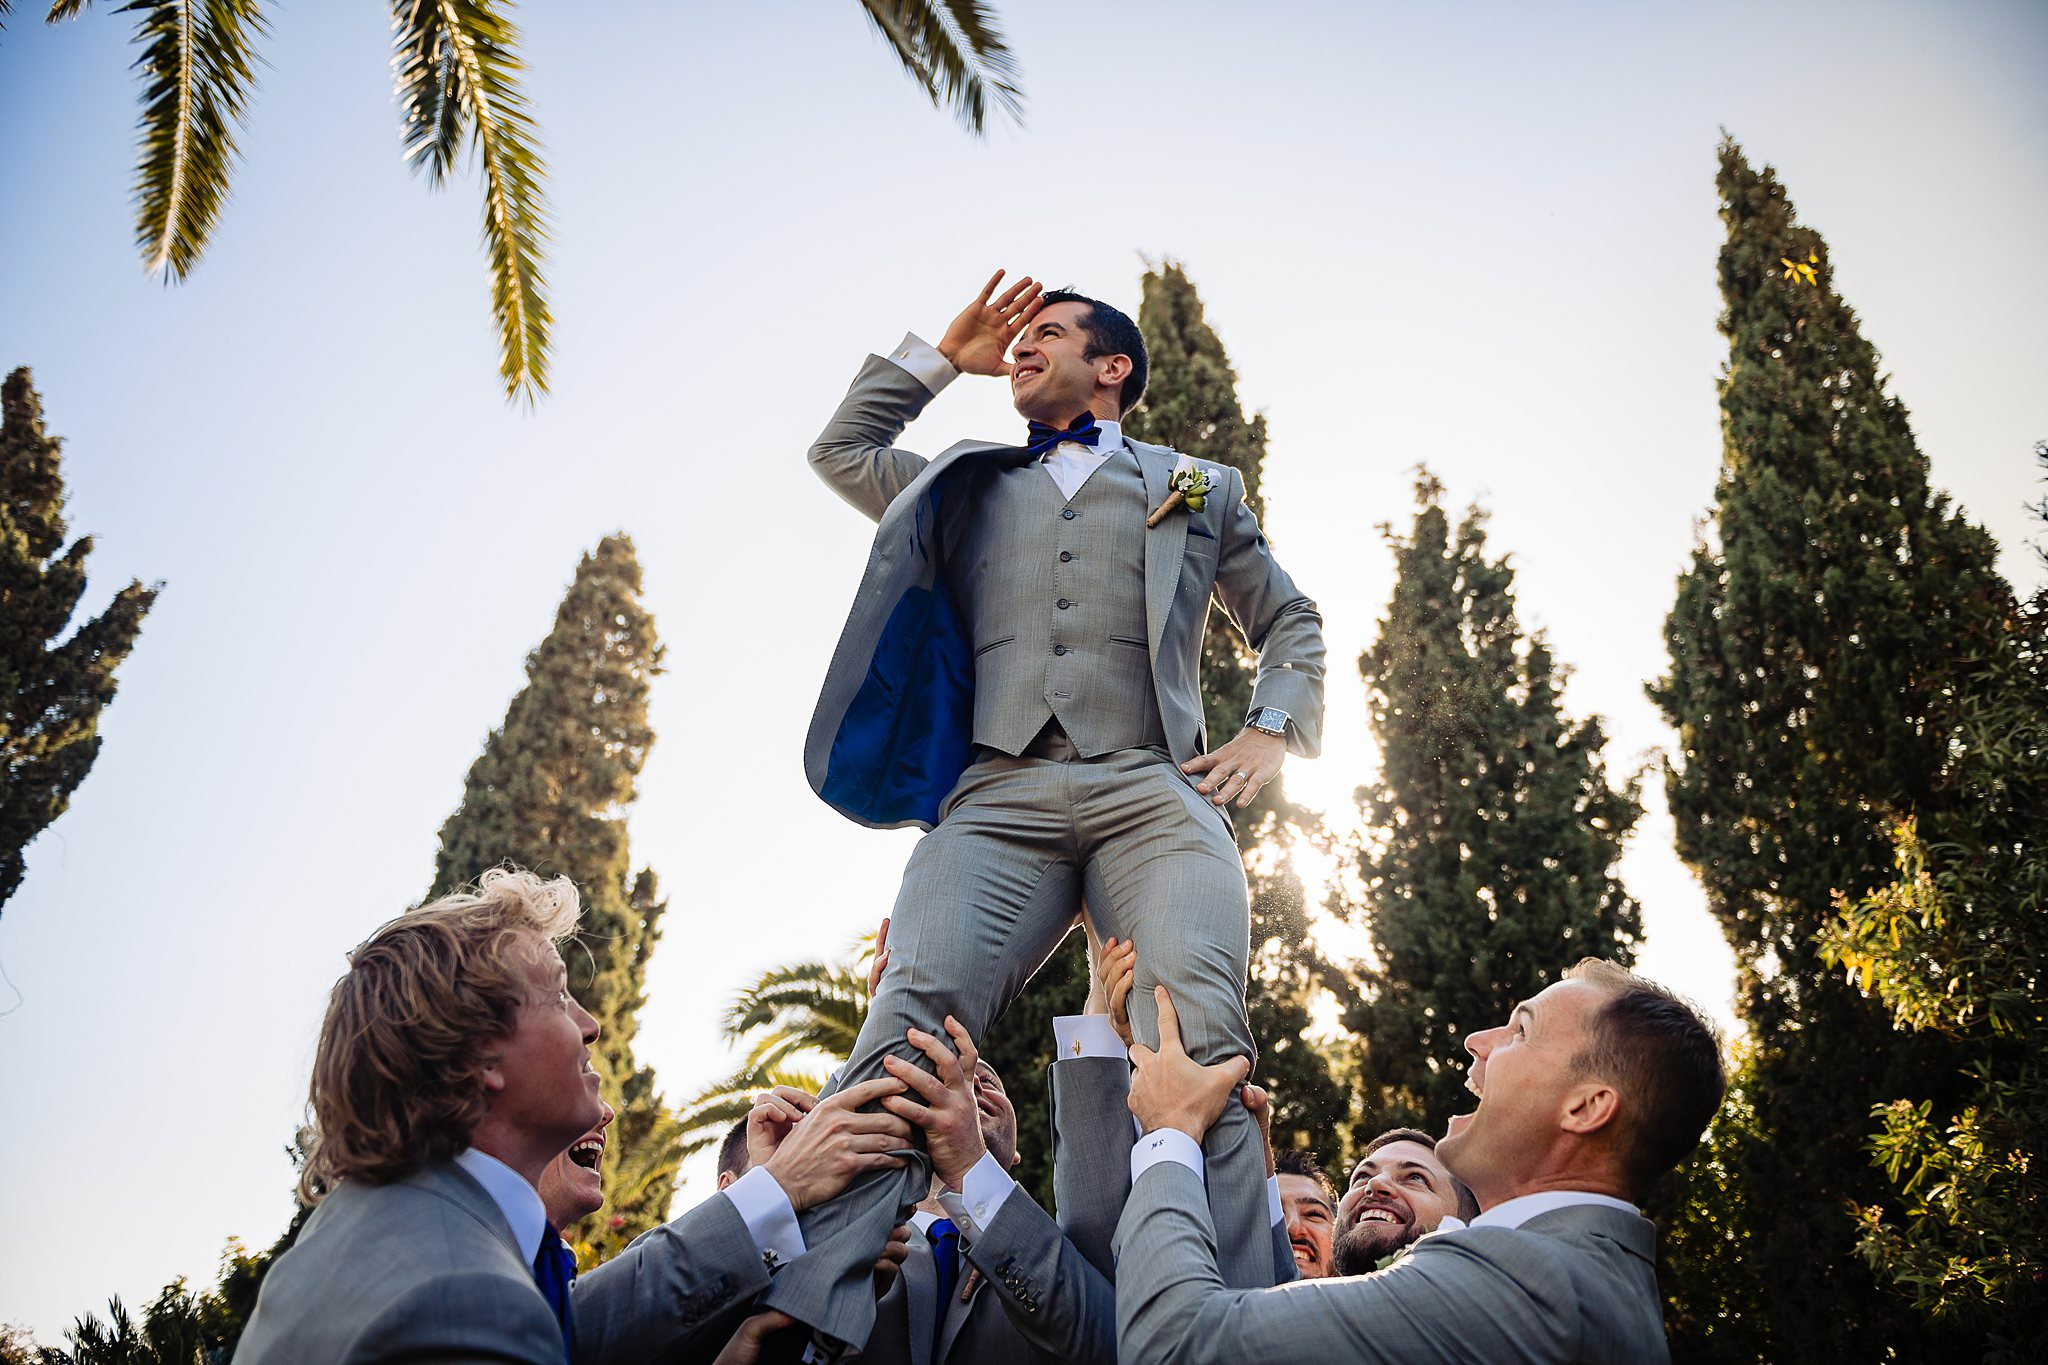 groomsmen having fun holding the groom in the air- photo by Shane P Watts Photography